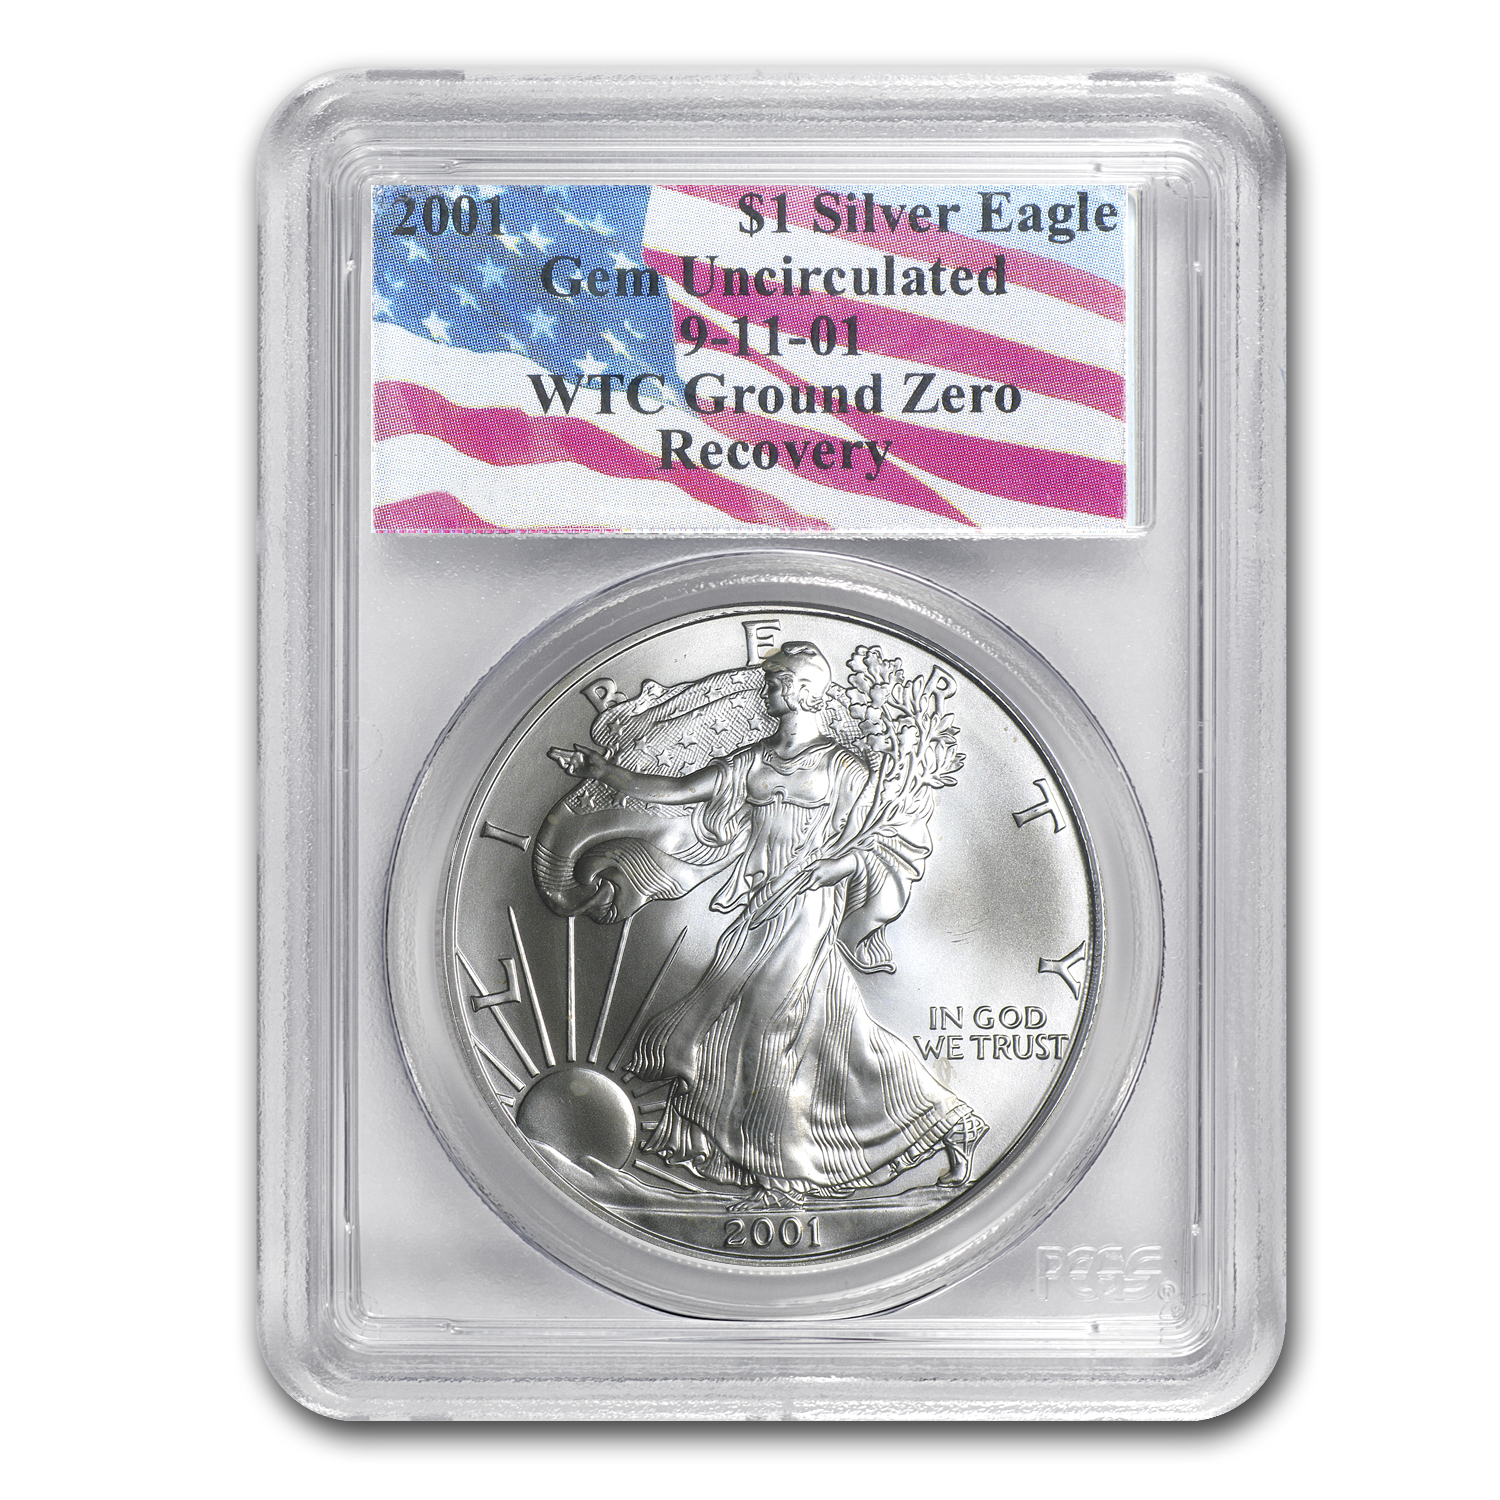 2001 Silver American Eagle Gem Unc PCGS (World Trade Center)